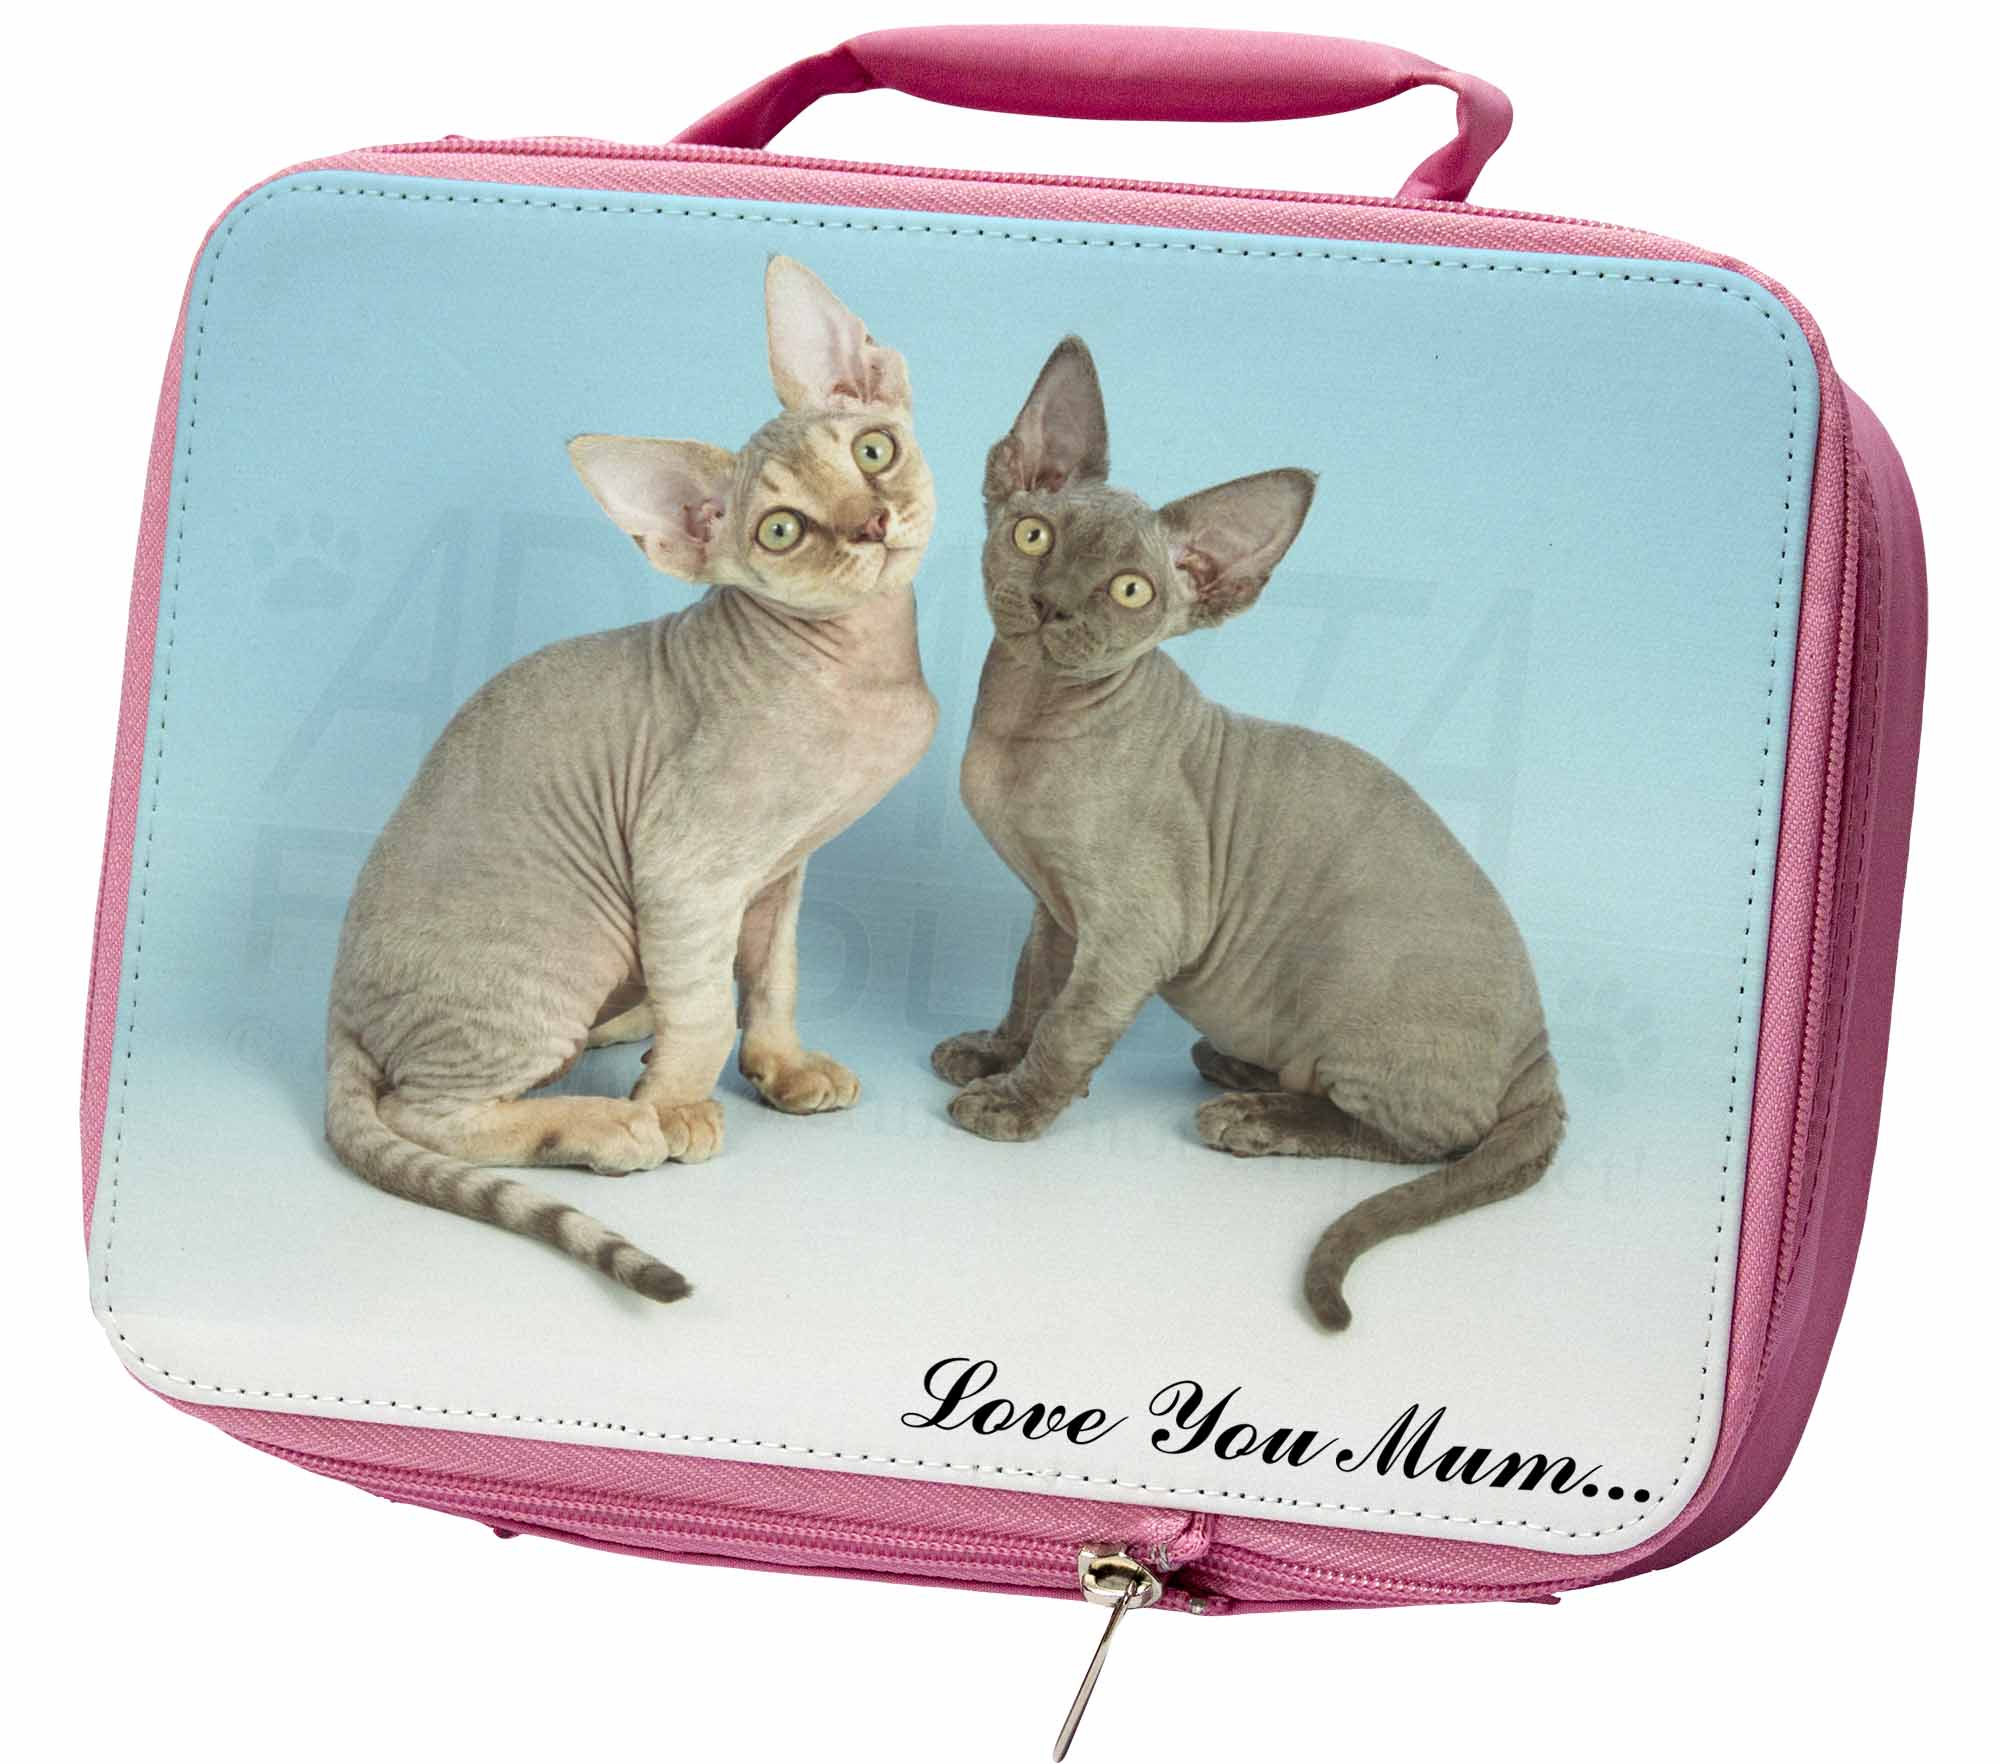 Devon Rex Cats 'Love You Mum' Insulated Pink School Lunch Box Bag, AC20lymLBP